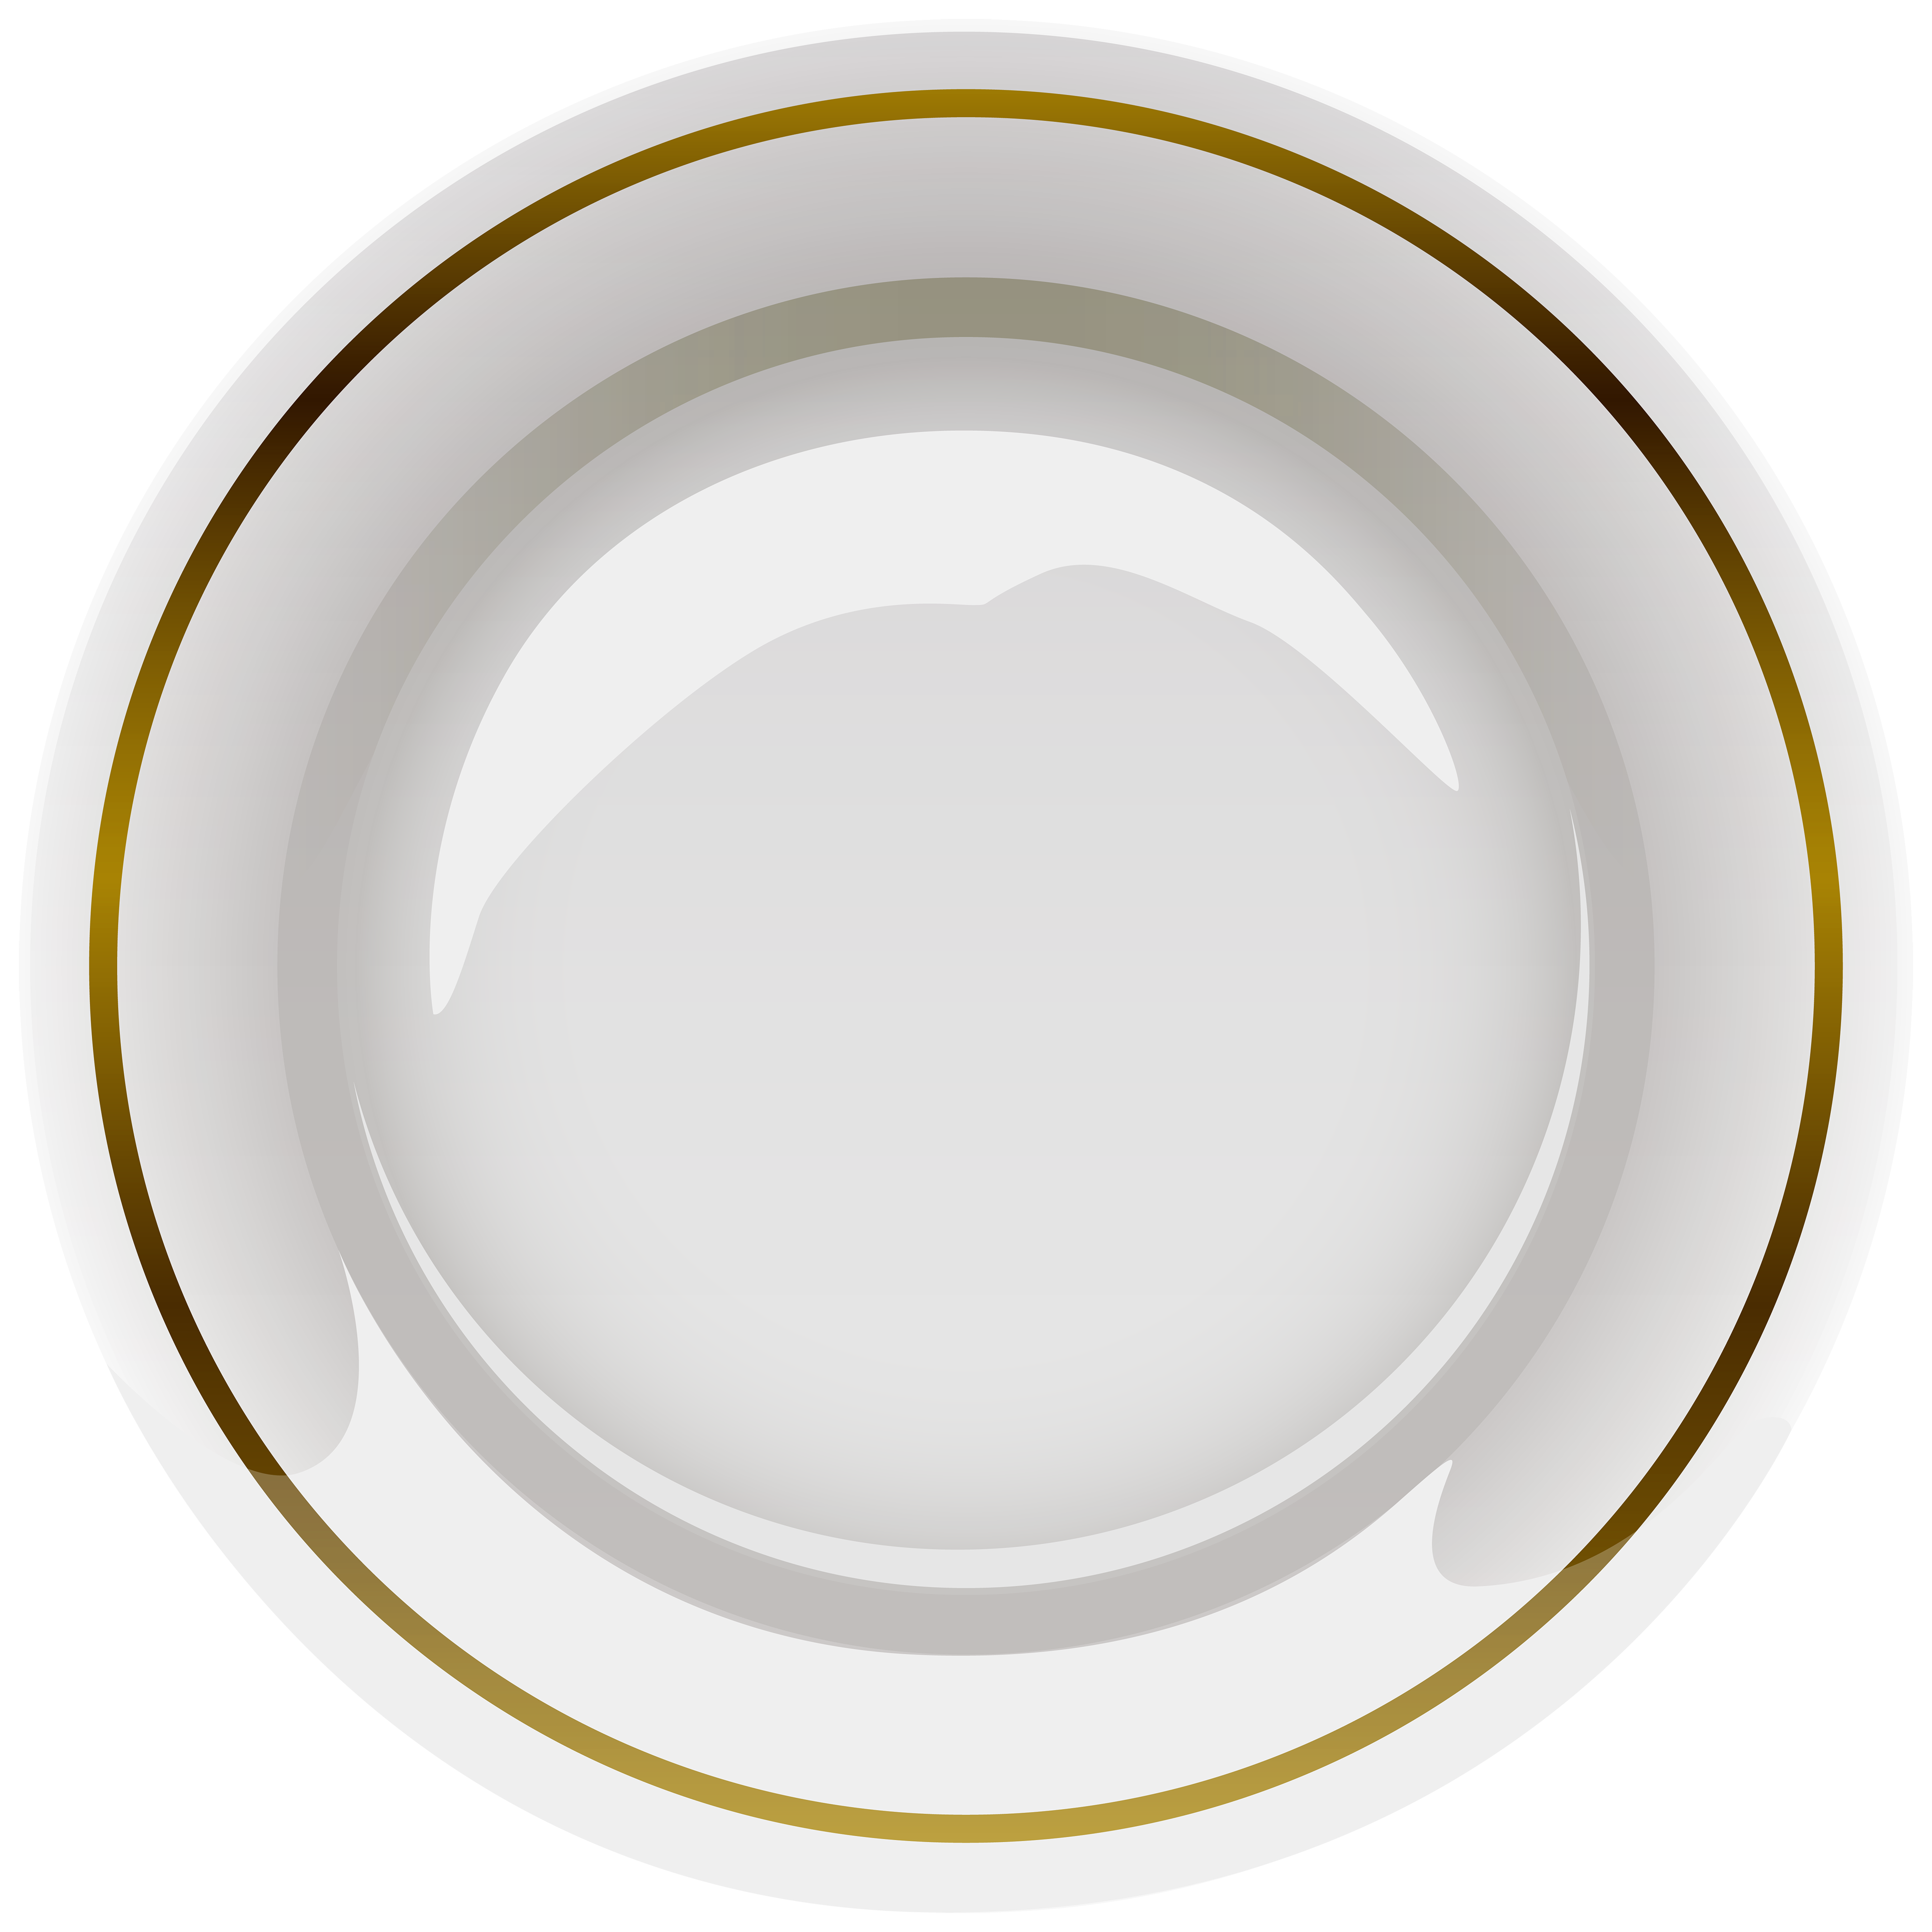 Plate PNG - 3187